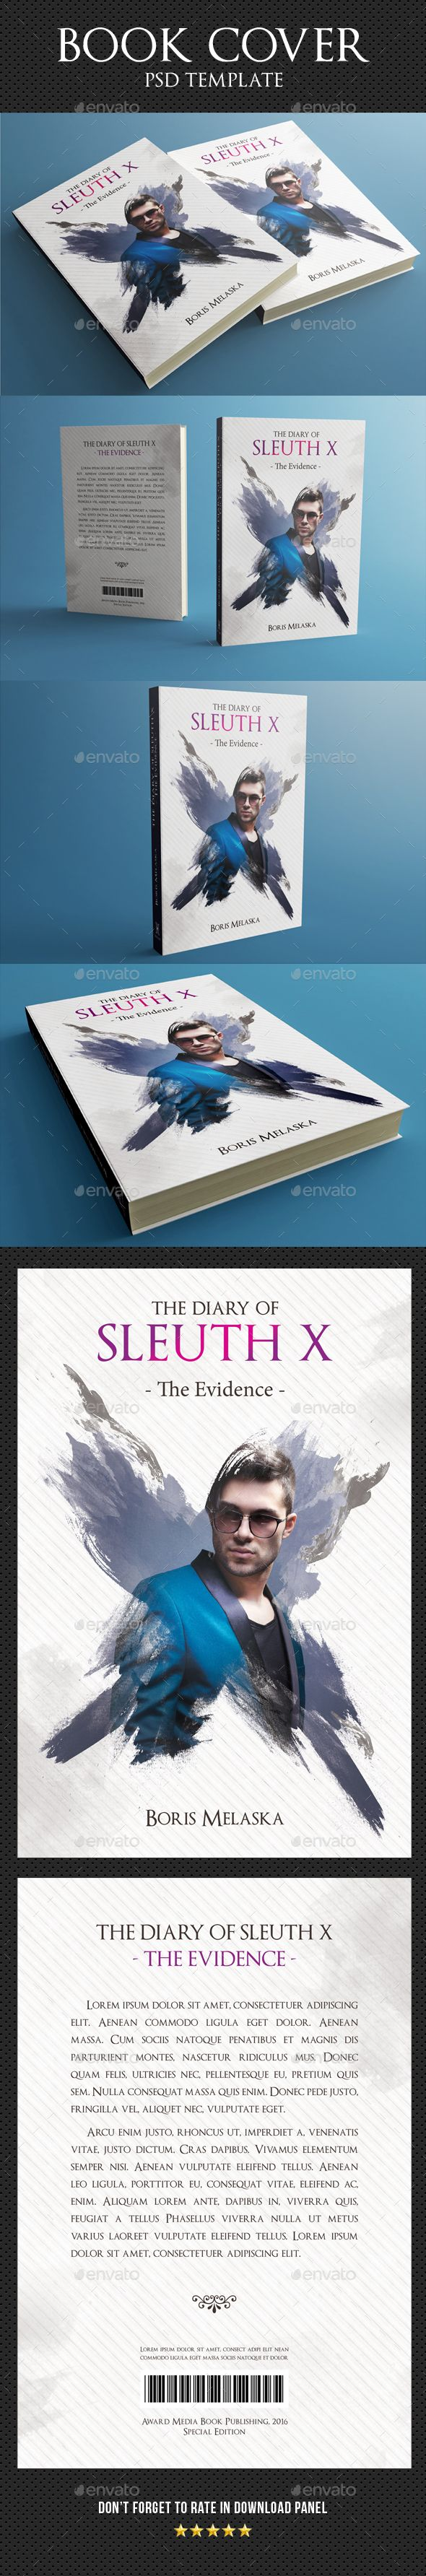 8 best book cover template design images on pinterest book covers